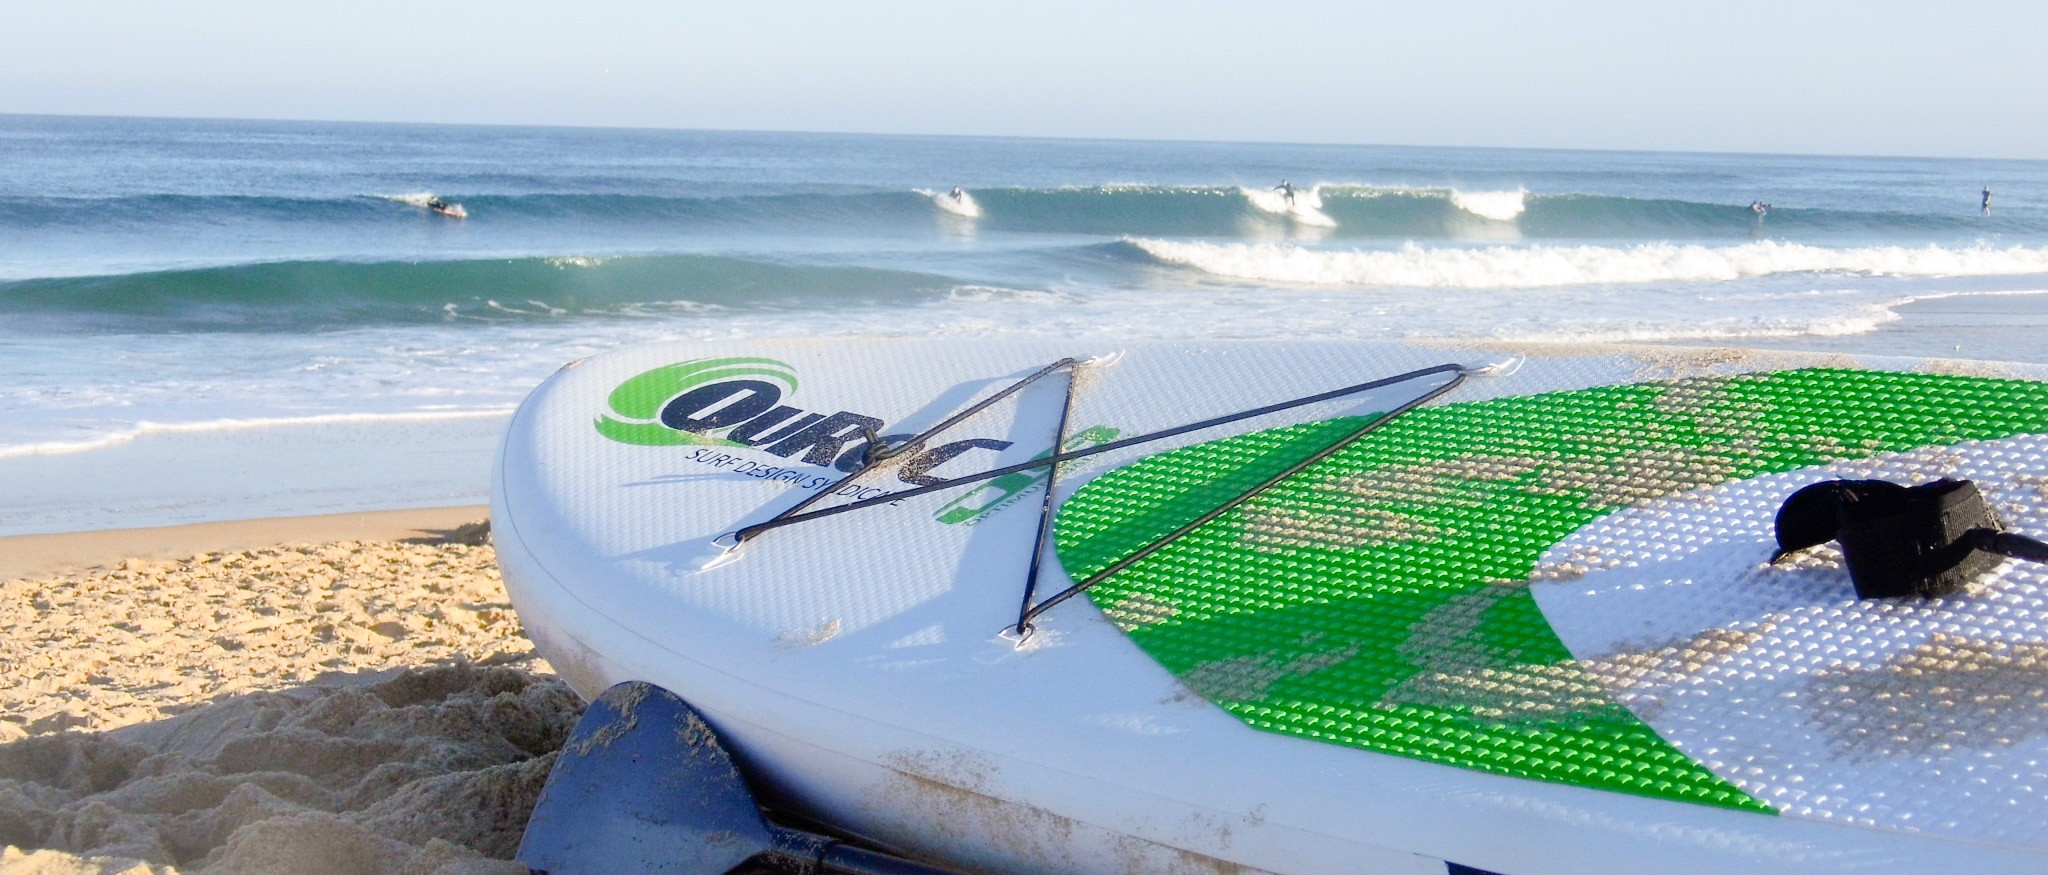 Quroc Inflatable Stand Up Paddle Boards France